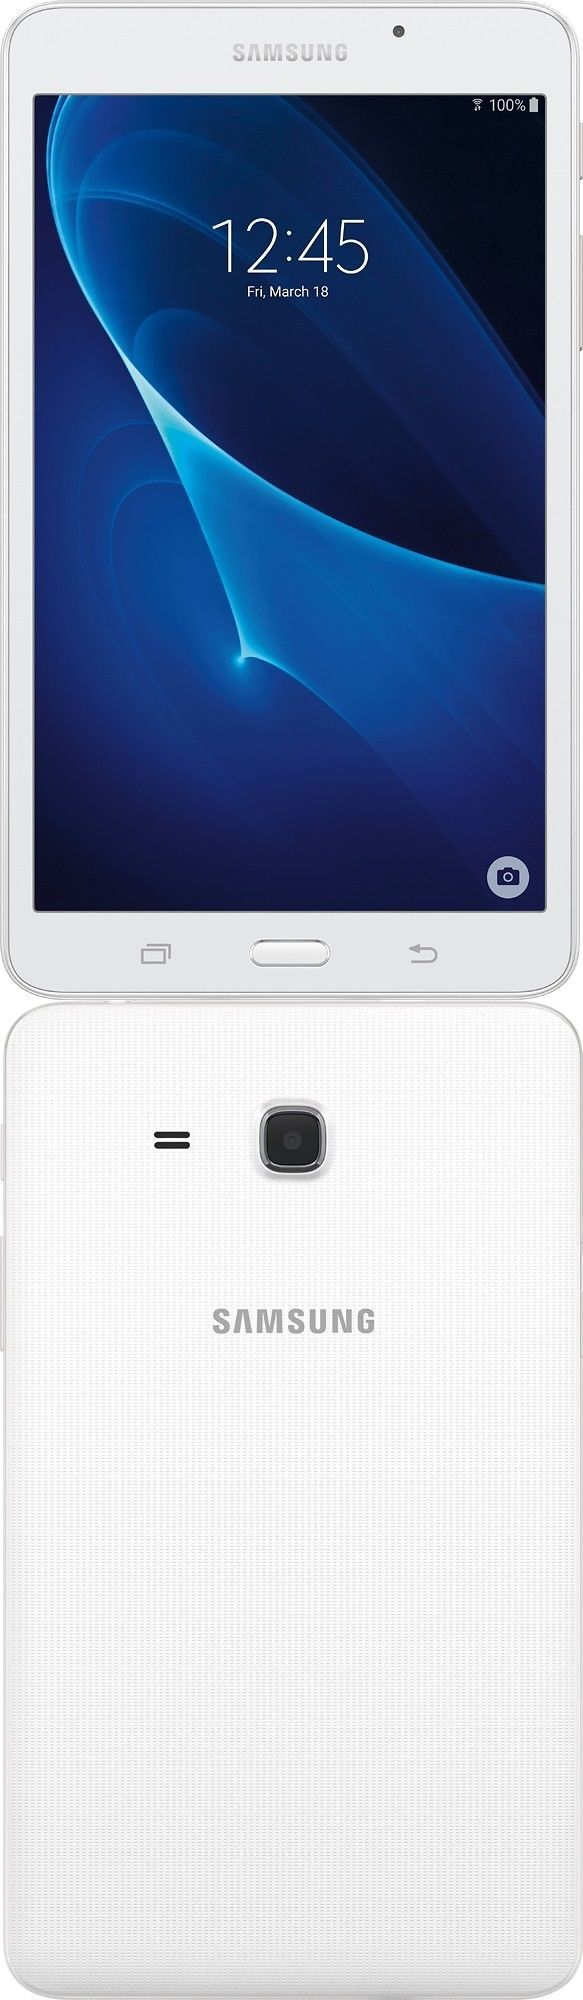 computers: Samsung Galaxy Tab A 7 Tablet Wi-Fi Quad-Core 8Gb 1.5 Gb Ram Android White New BUY IT NOW ONLY: $119.9